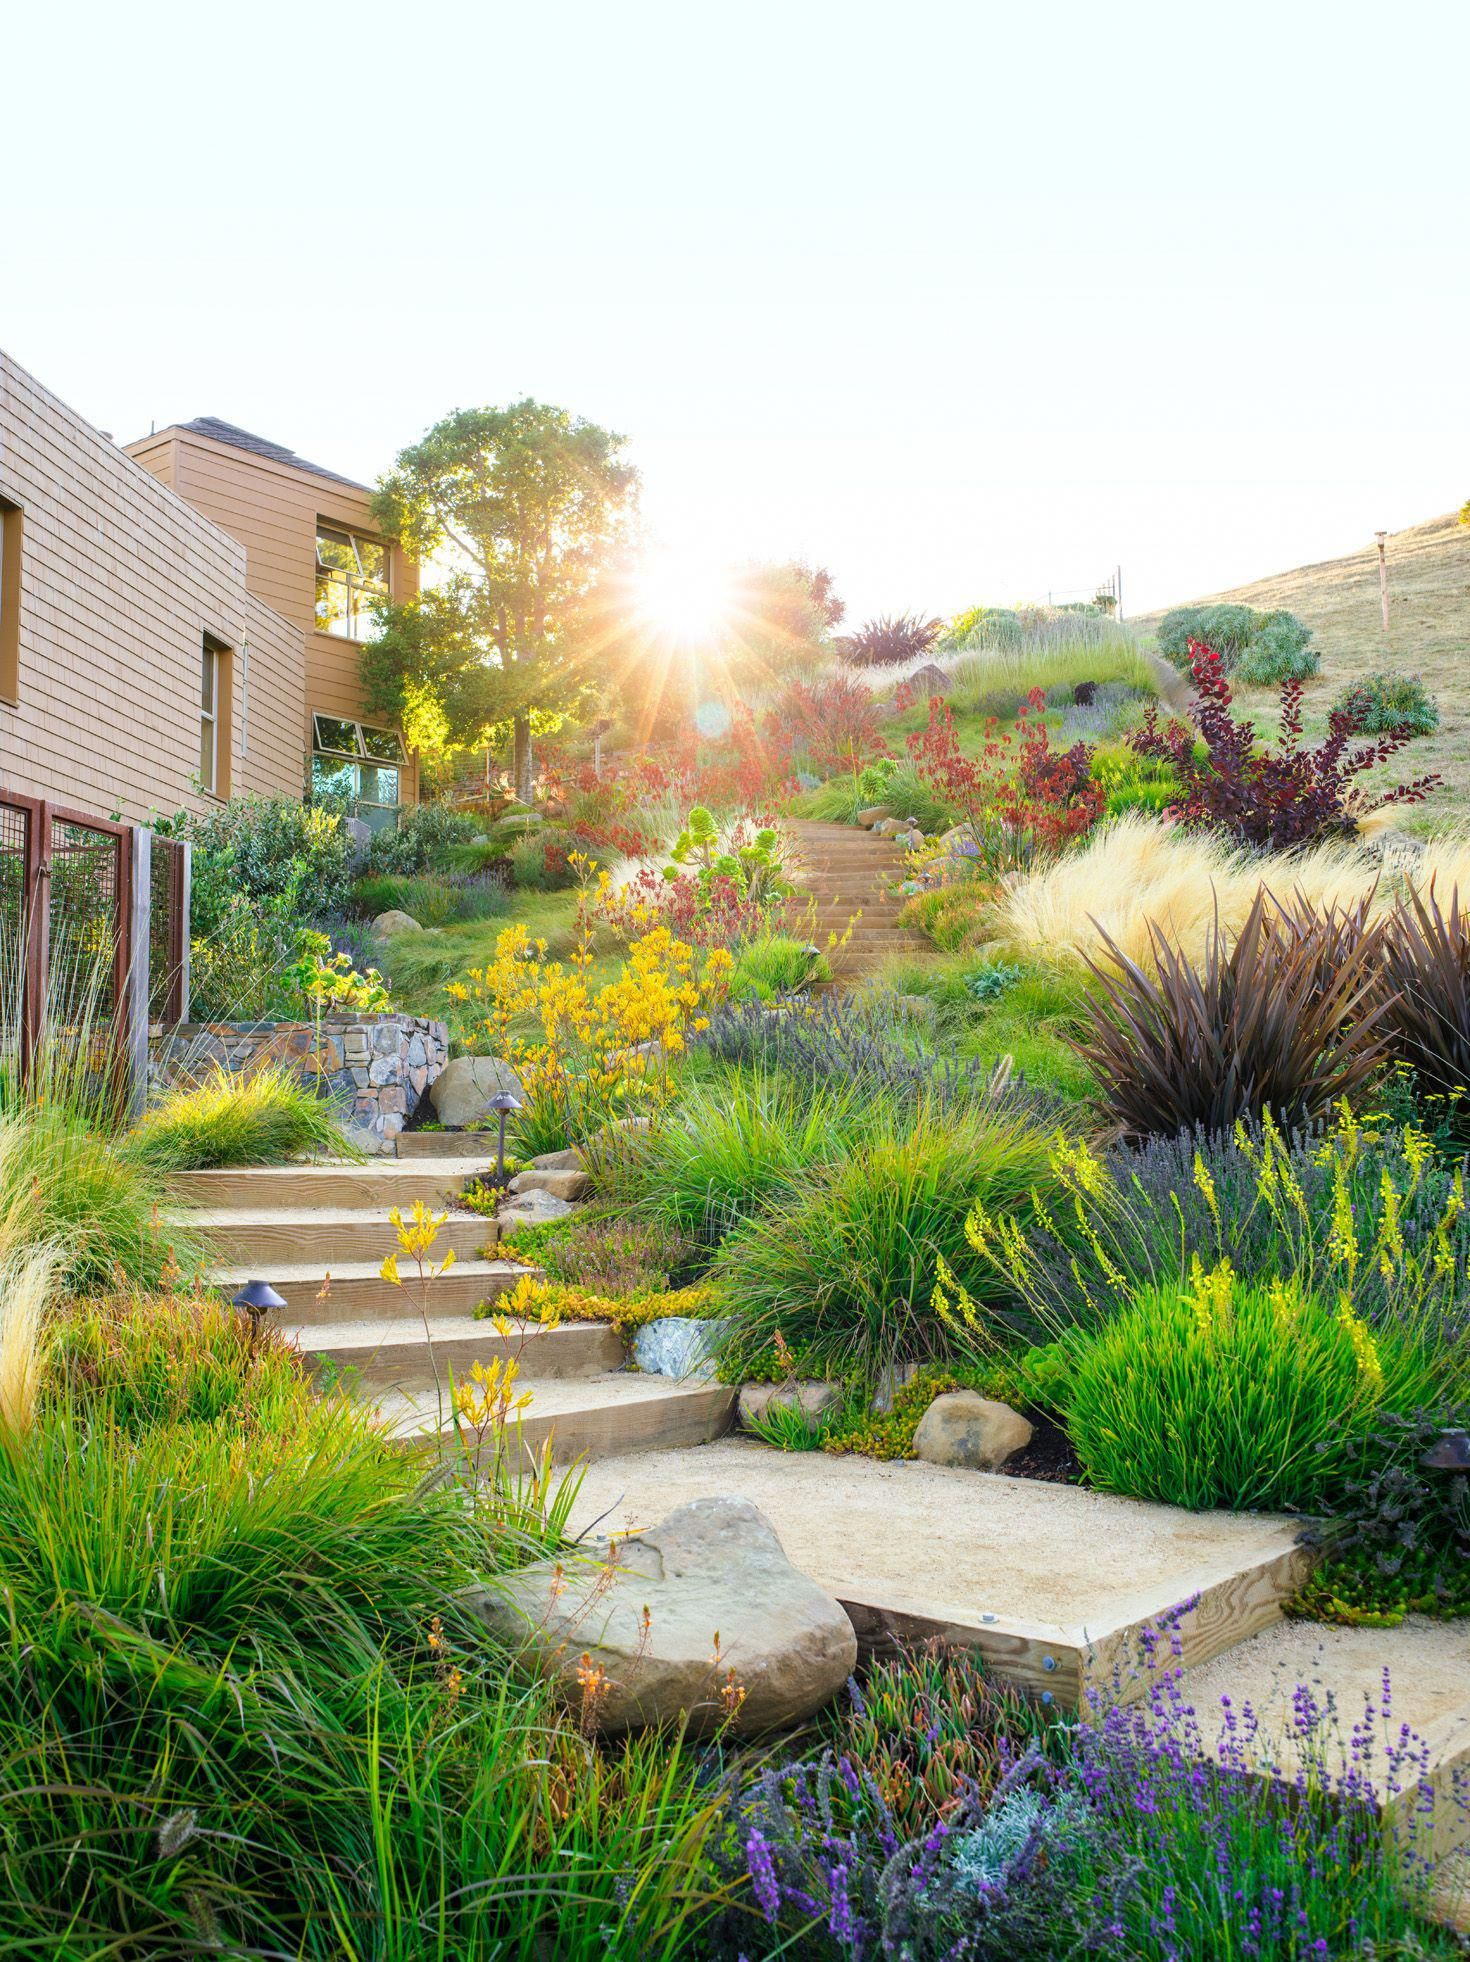 Water Wise Garden Design Guide Everything You Need To Give The Hose A Rest From Unthirsty Plant In 2020 Water Wise Landscaping Low Water Gardening Landscape Design